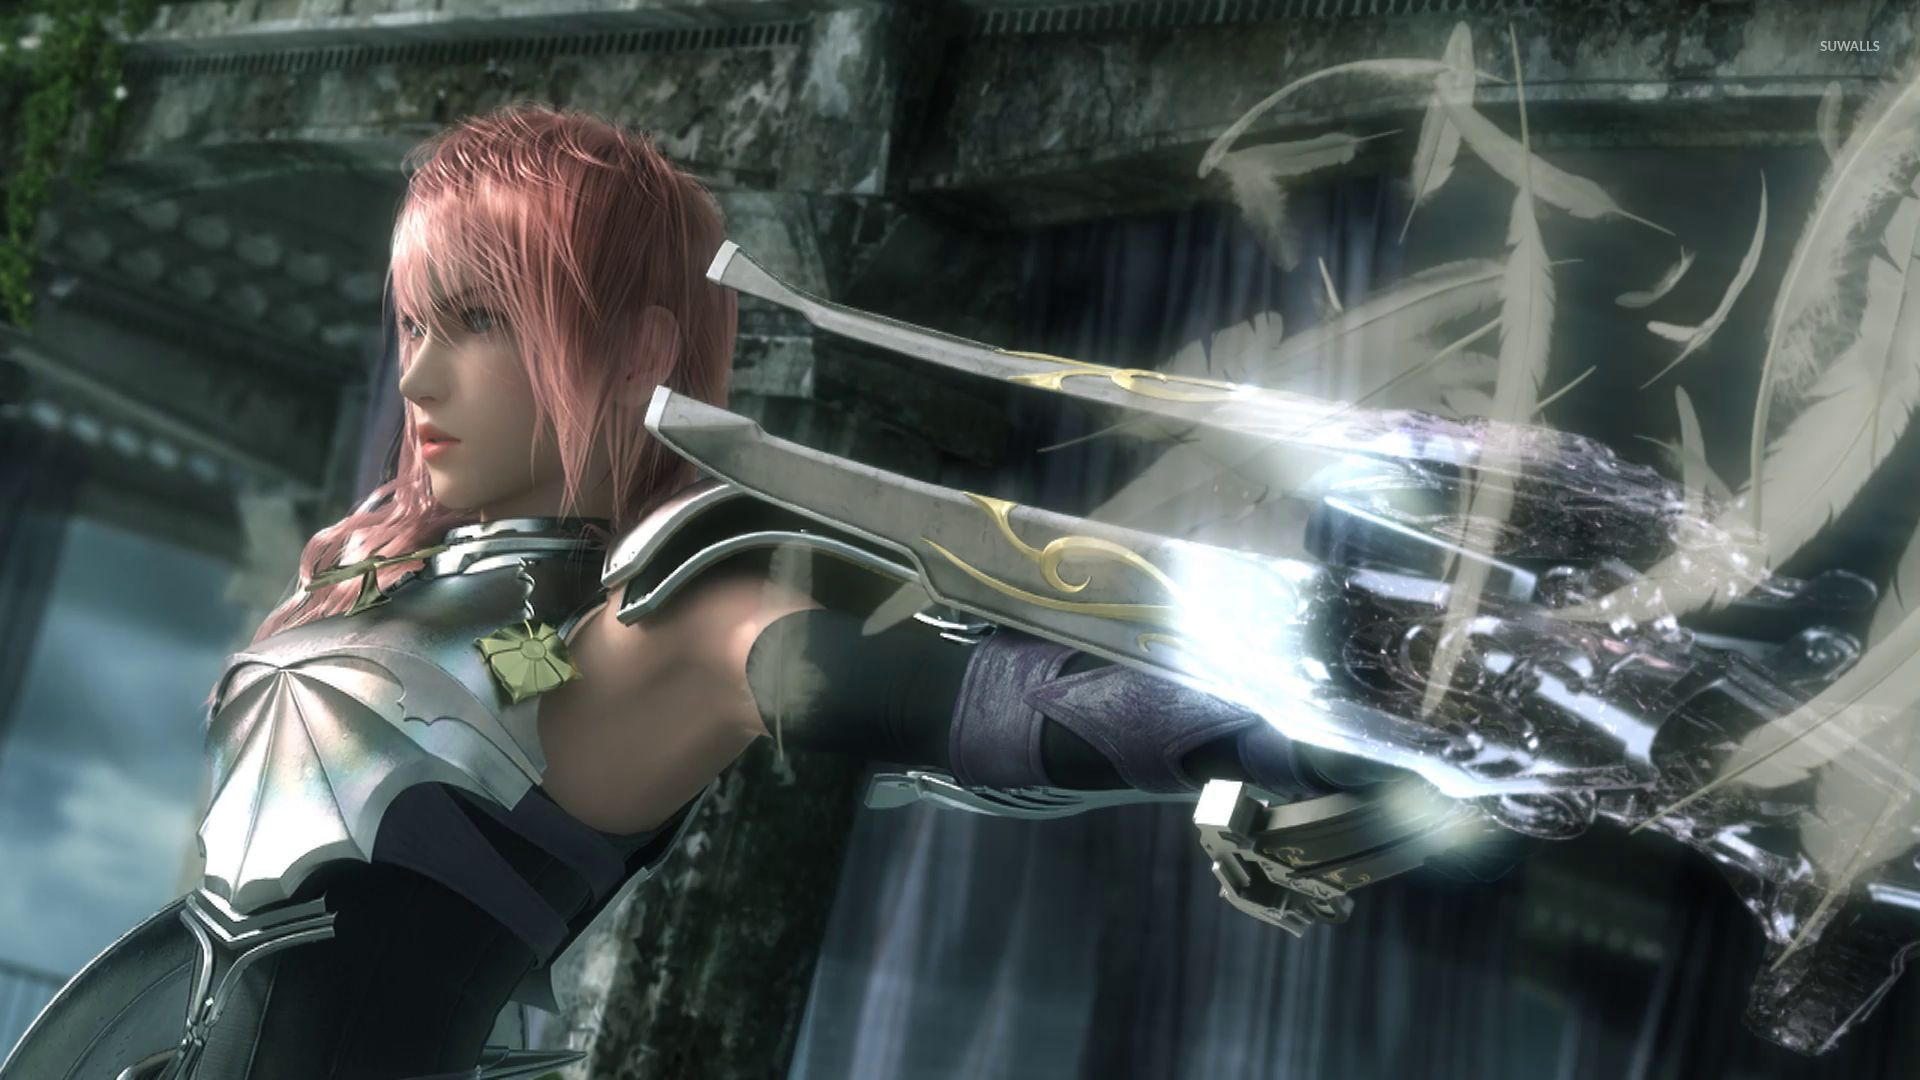 Lightning final fantasy xiii 2 2 wallpaper game wallpapers lightning final fantasy xiii 2 2 wallpaper voltagebd Choice Image